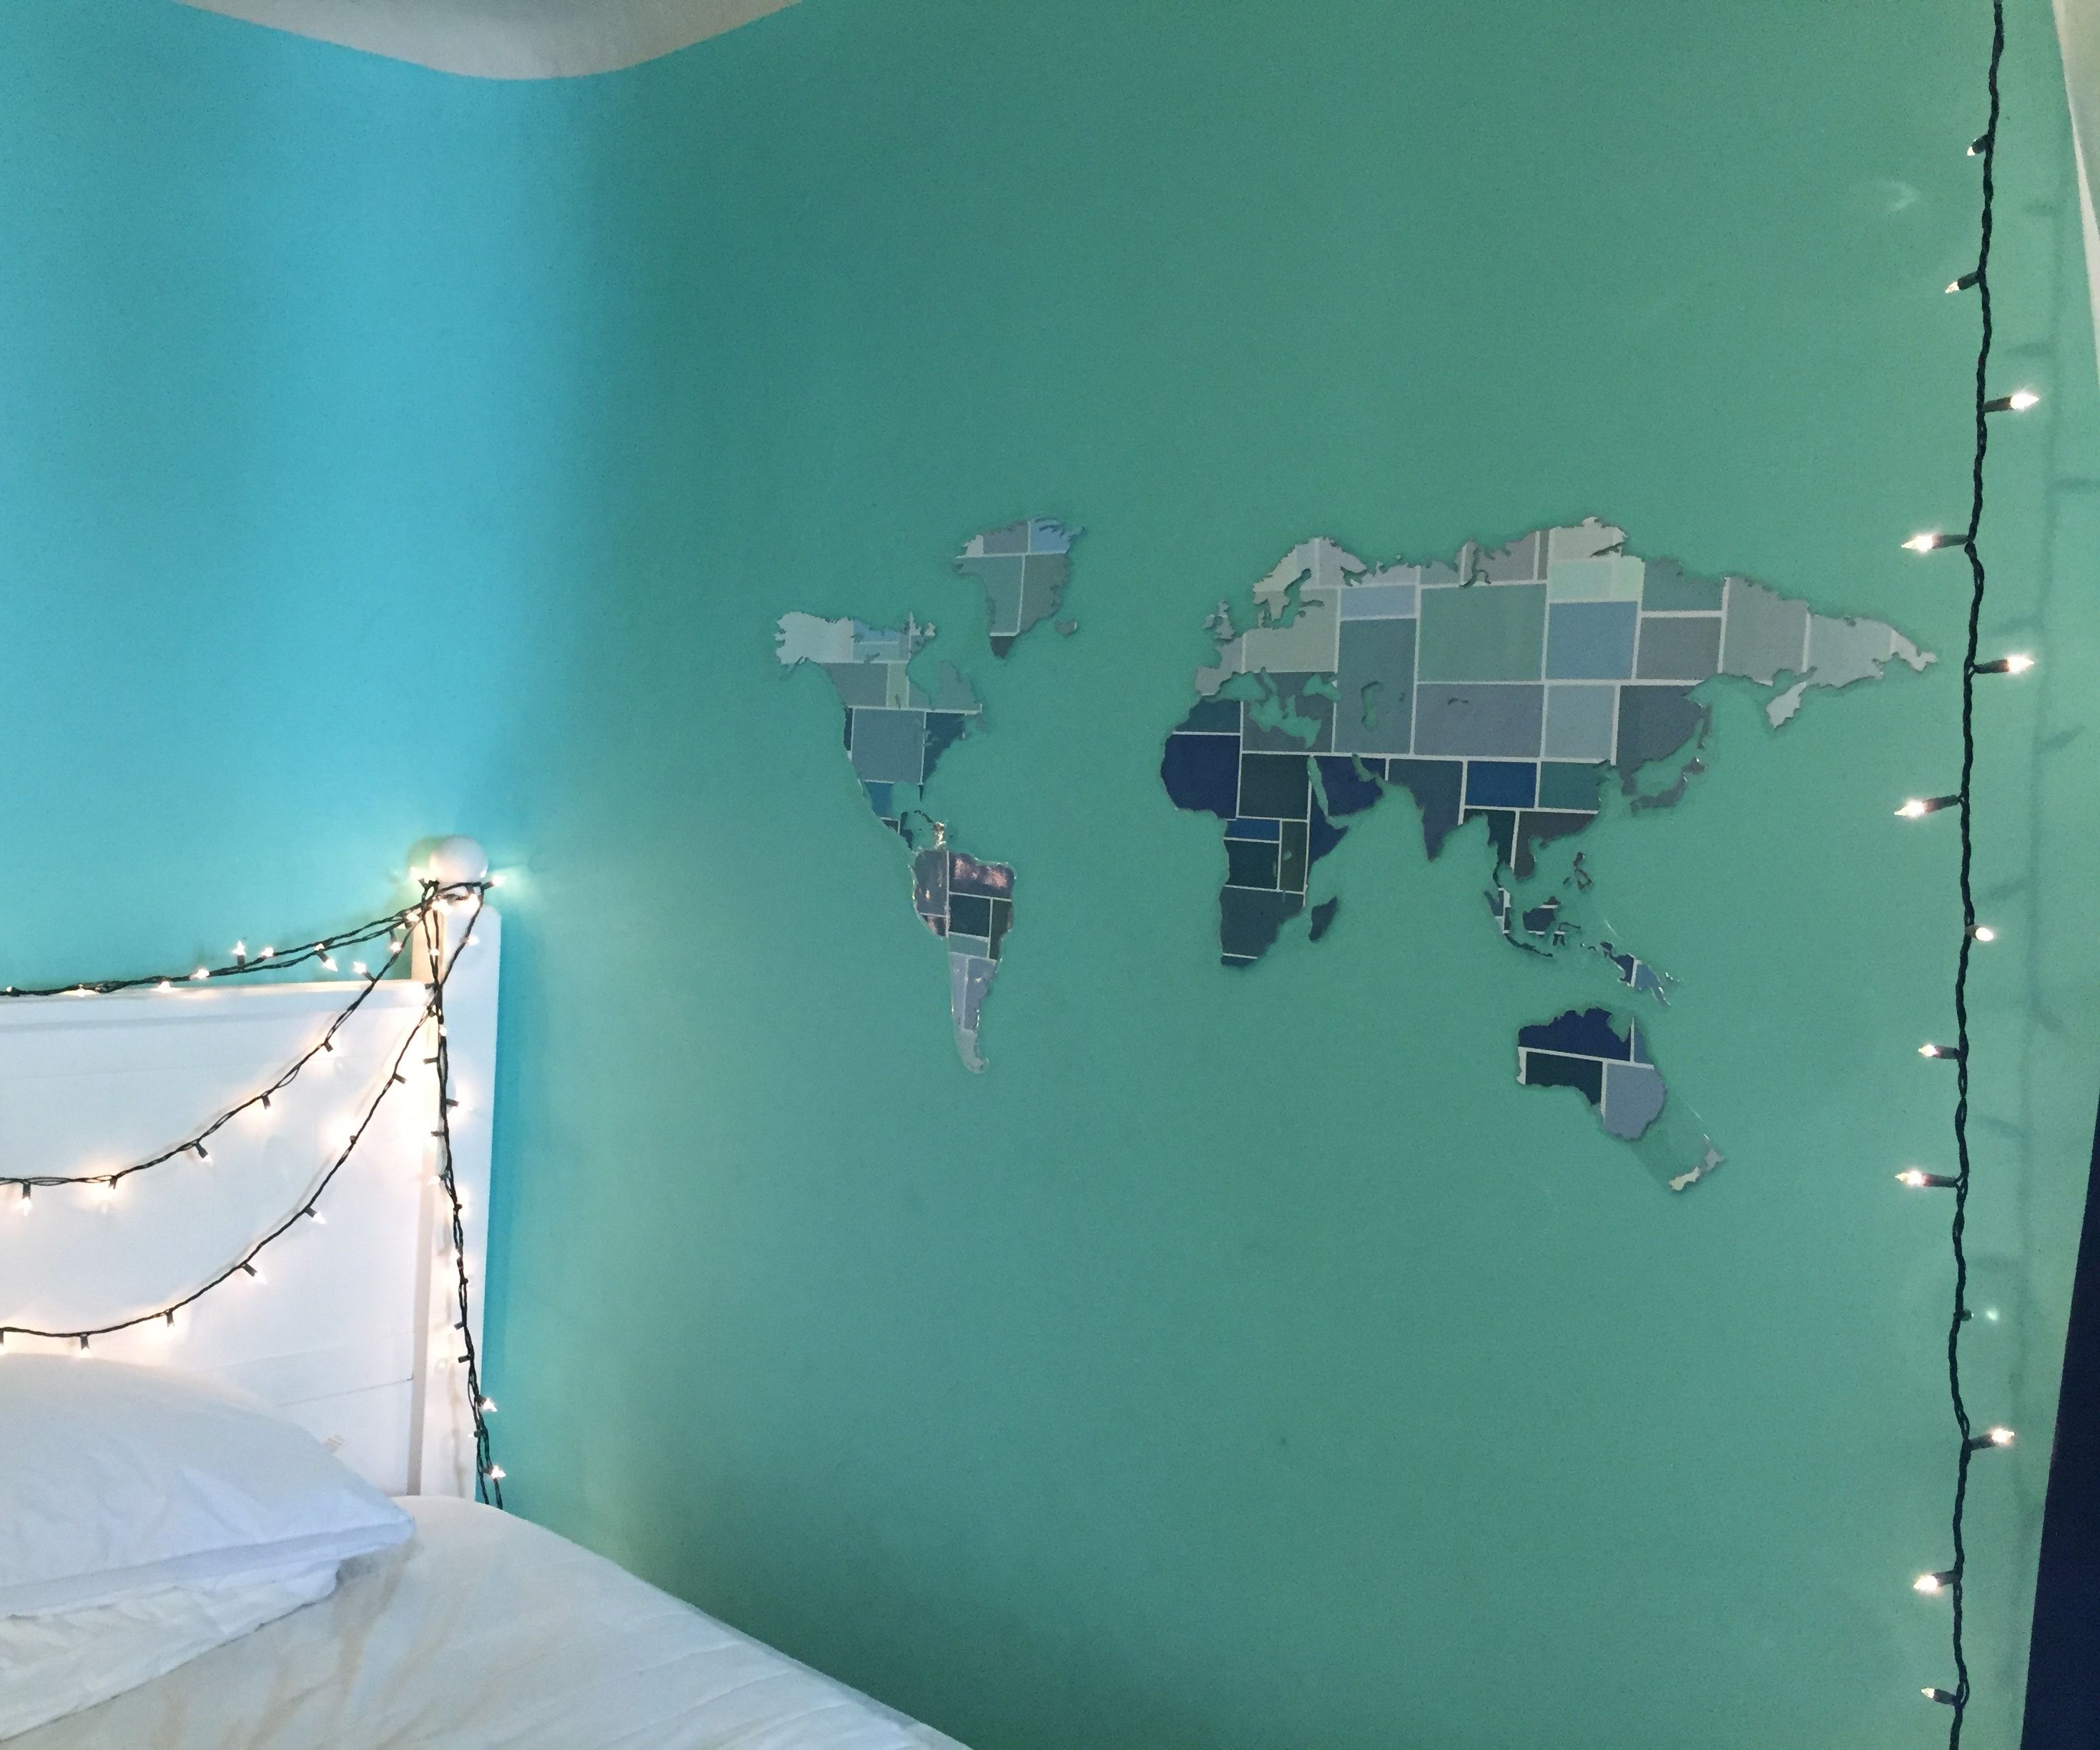 World Map Decal From Paint Chips for Free!!